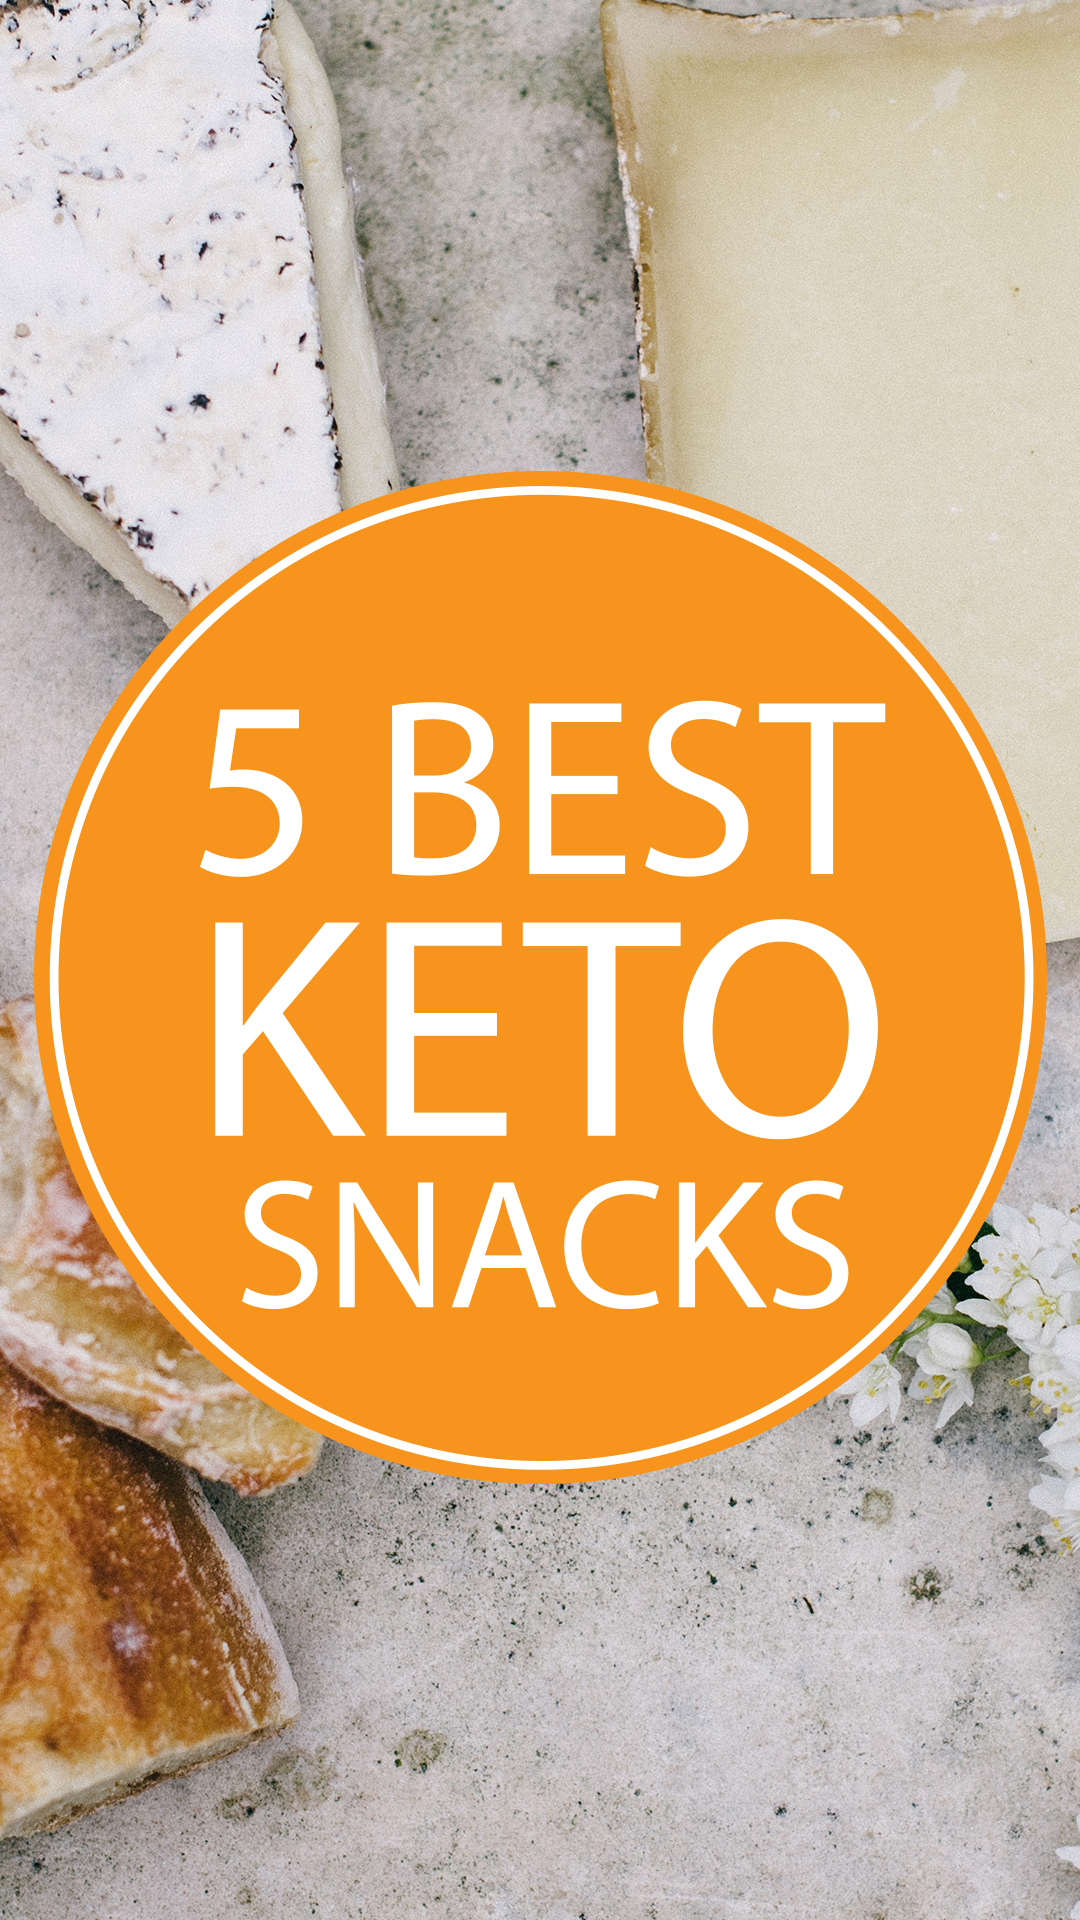 Best Keto Snacks to take on the go! Grab these packaged keto snacks that help you breeze through the keto diet!